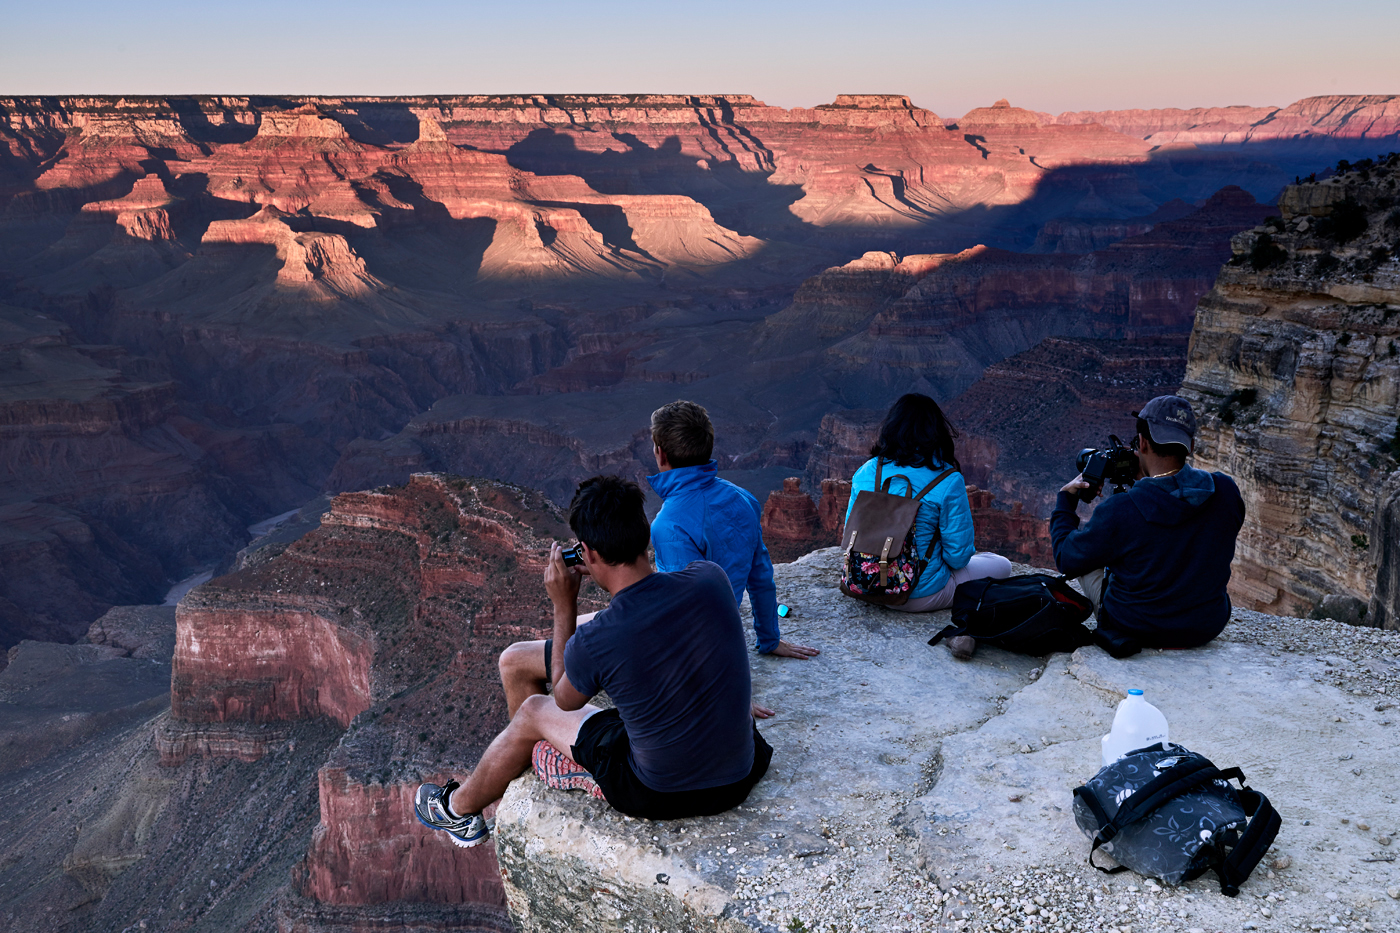 People watching the sunset at Hopi Point in the Grand Canyon. Kirsty Owen photography